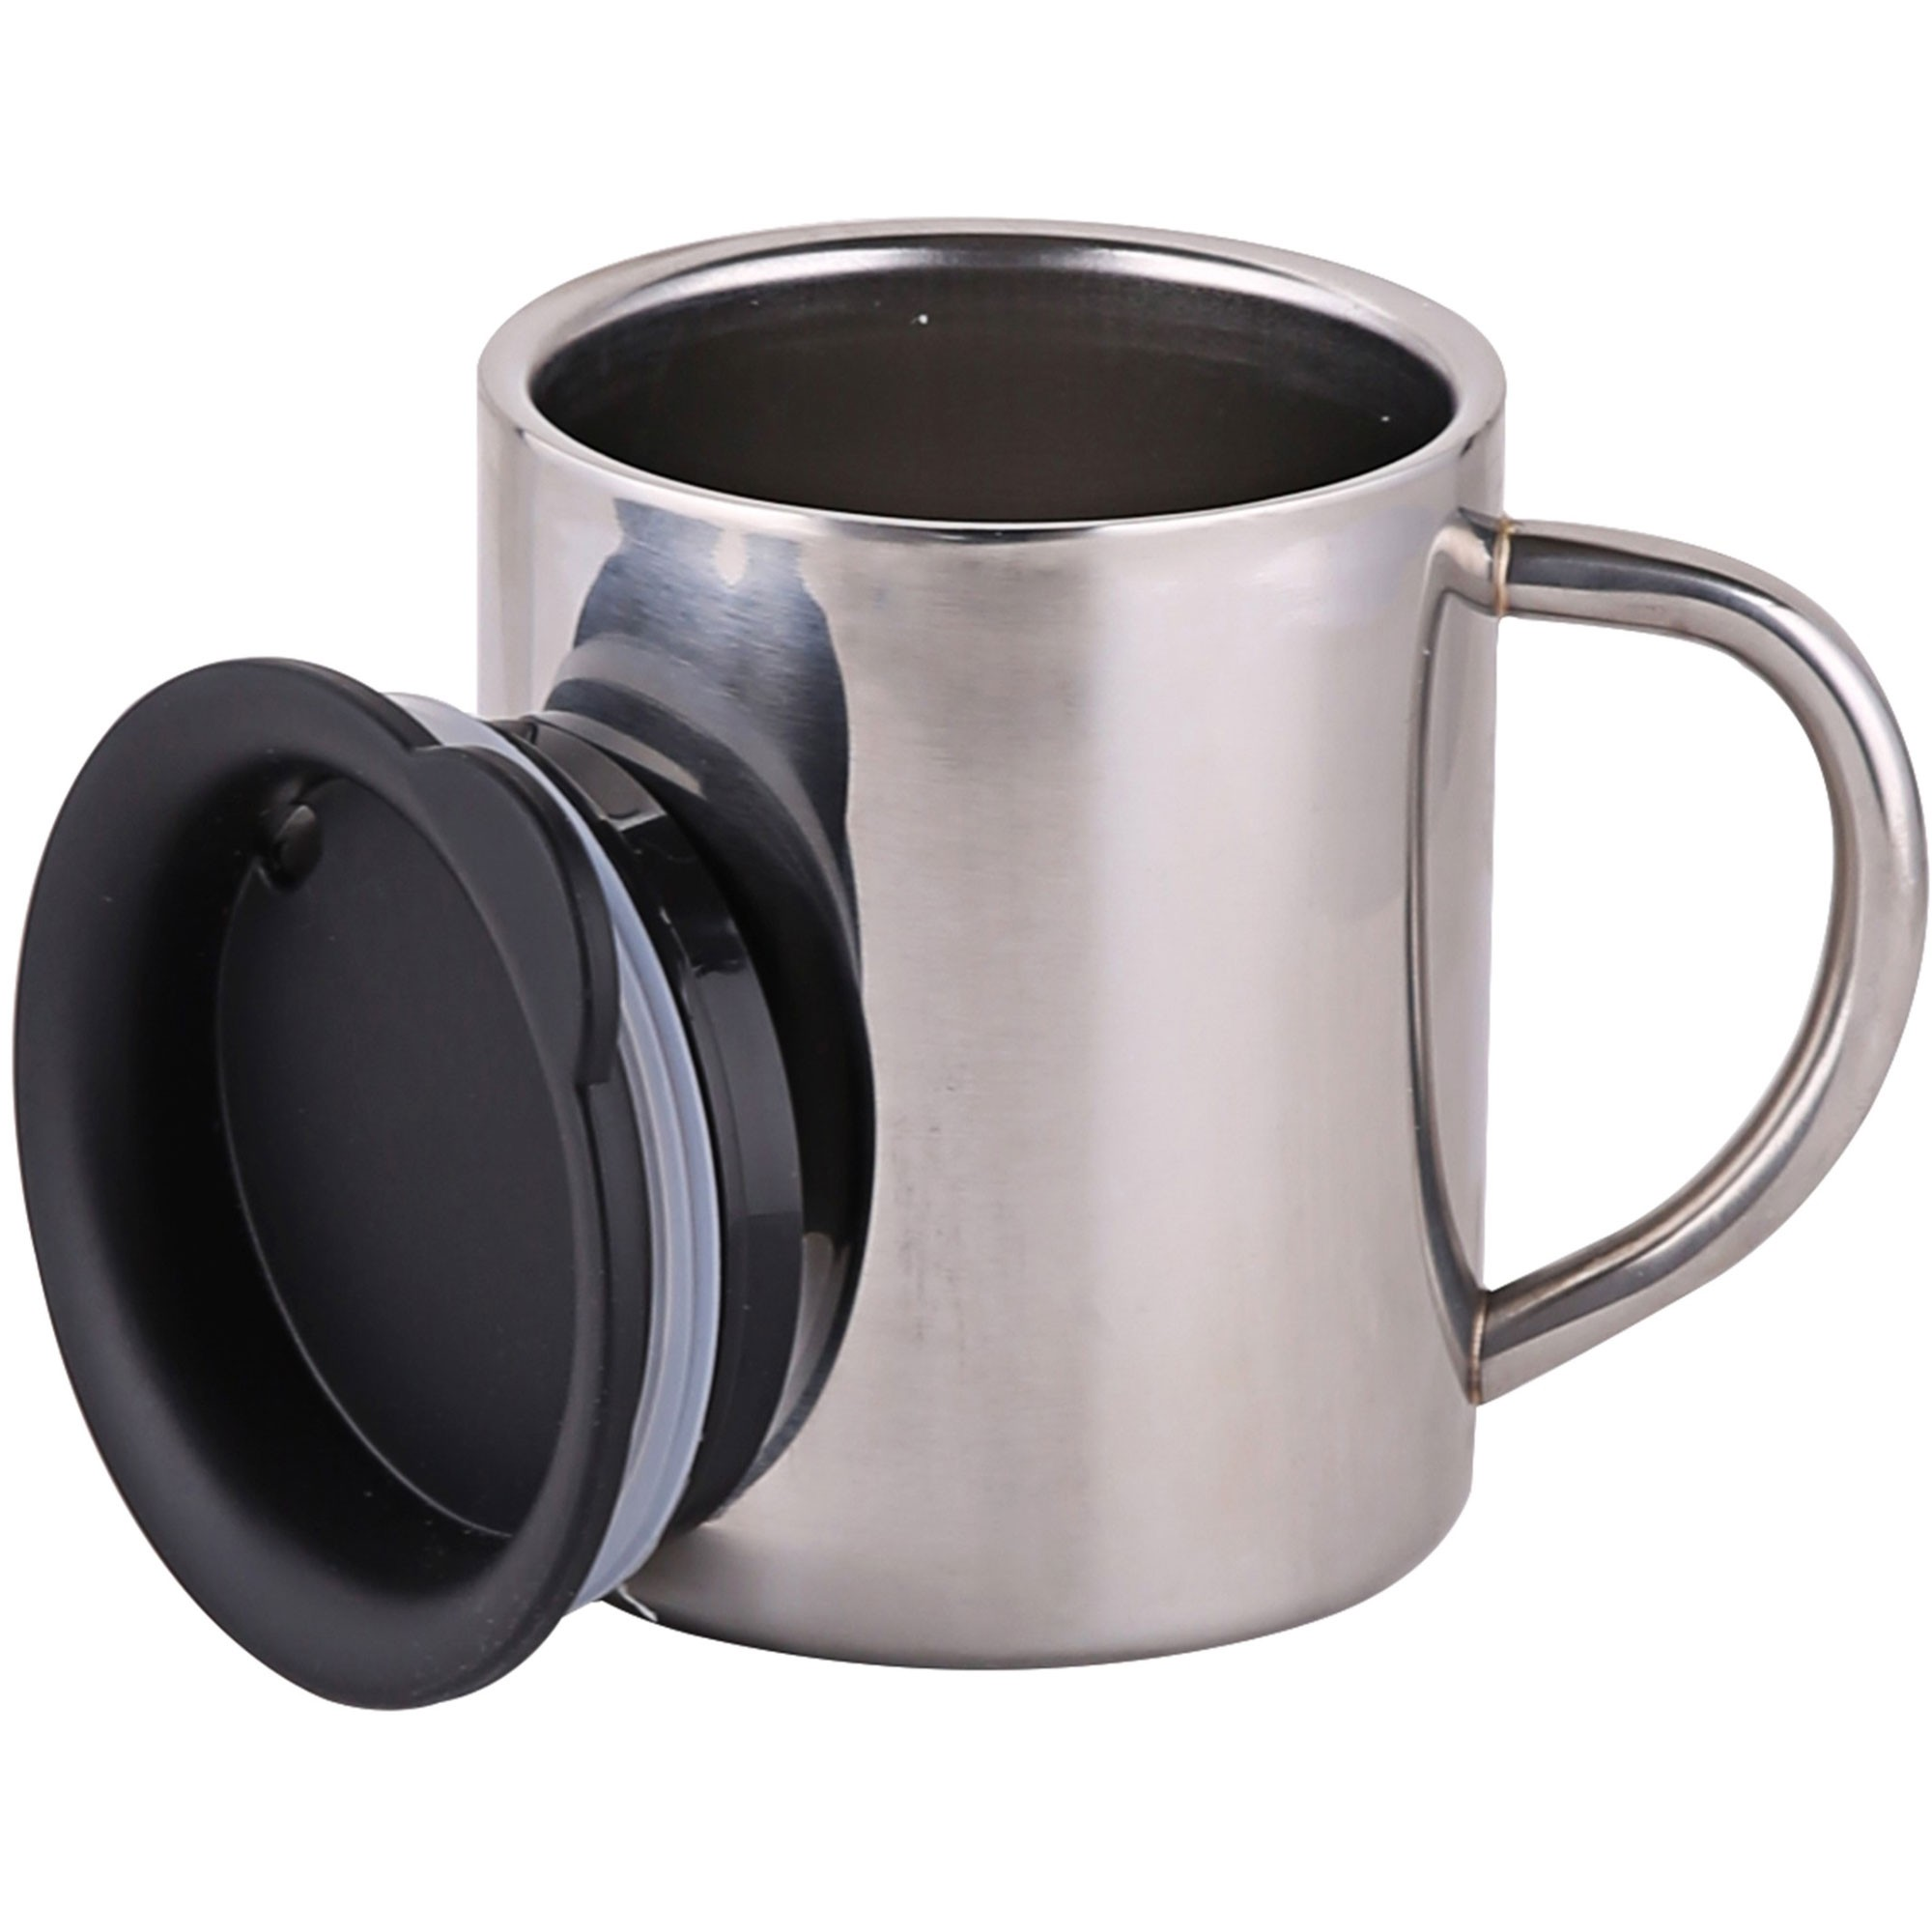 GSI-Glacier-Stainless-10oz-camp-cup-63220-0-i-S16.jpg